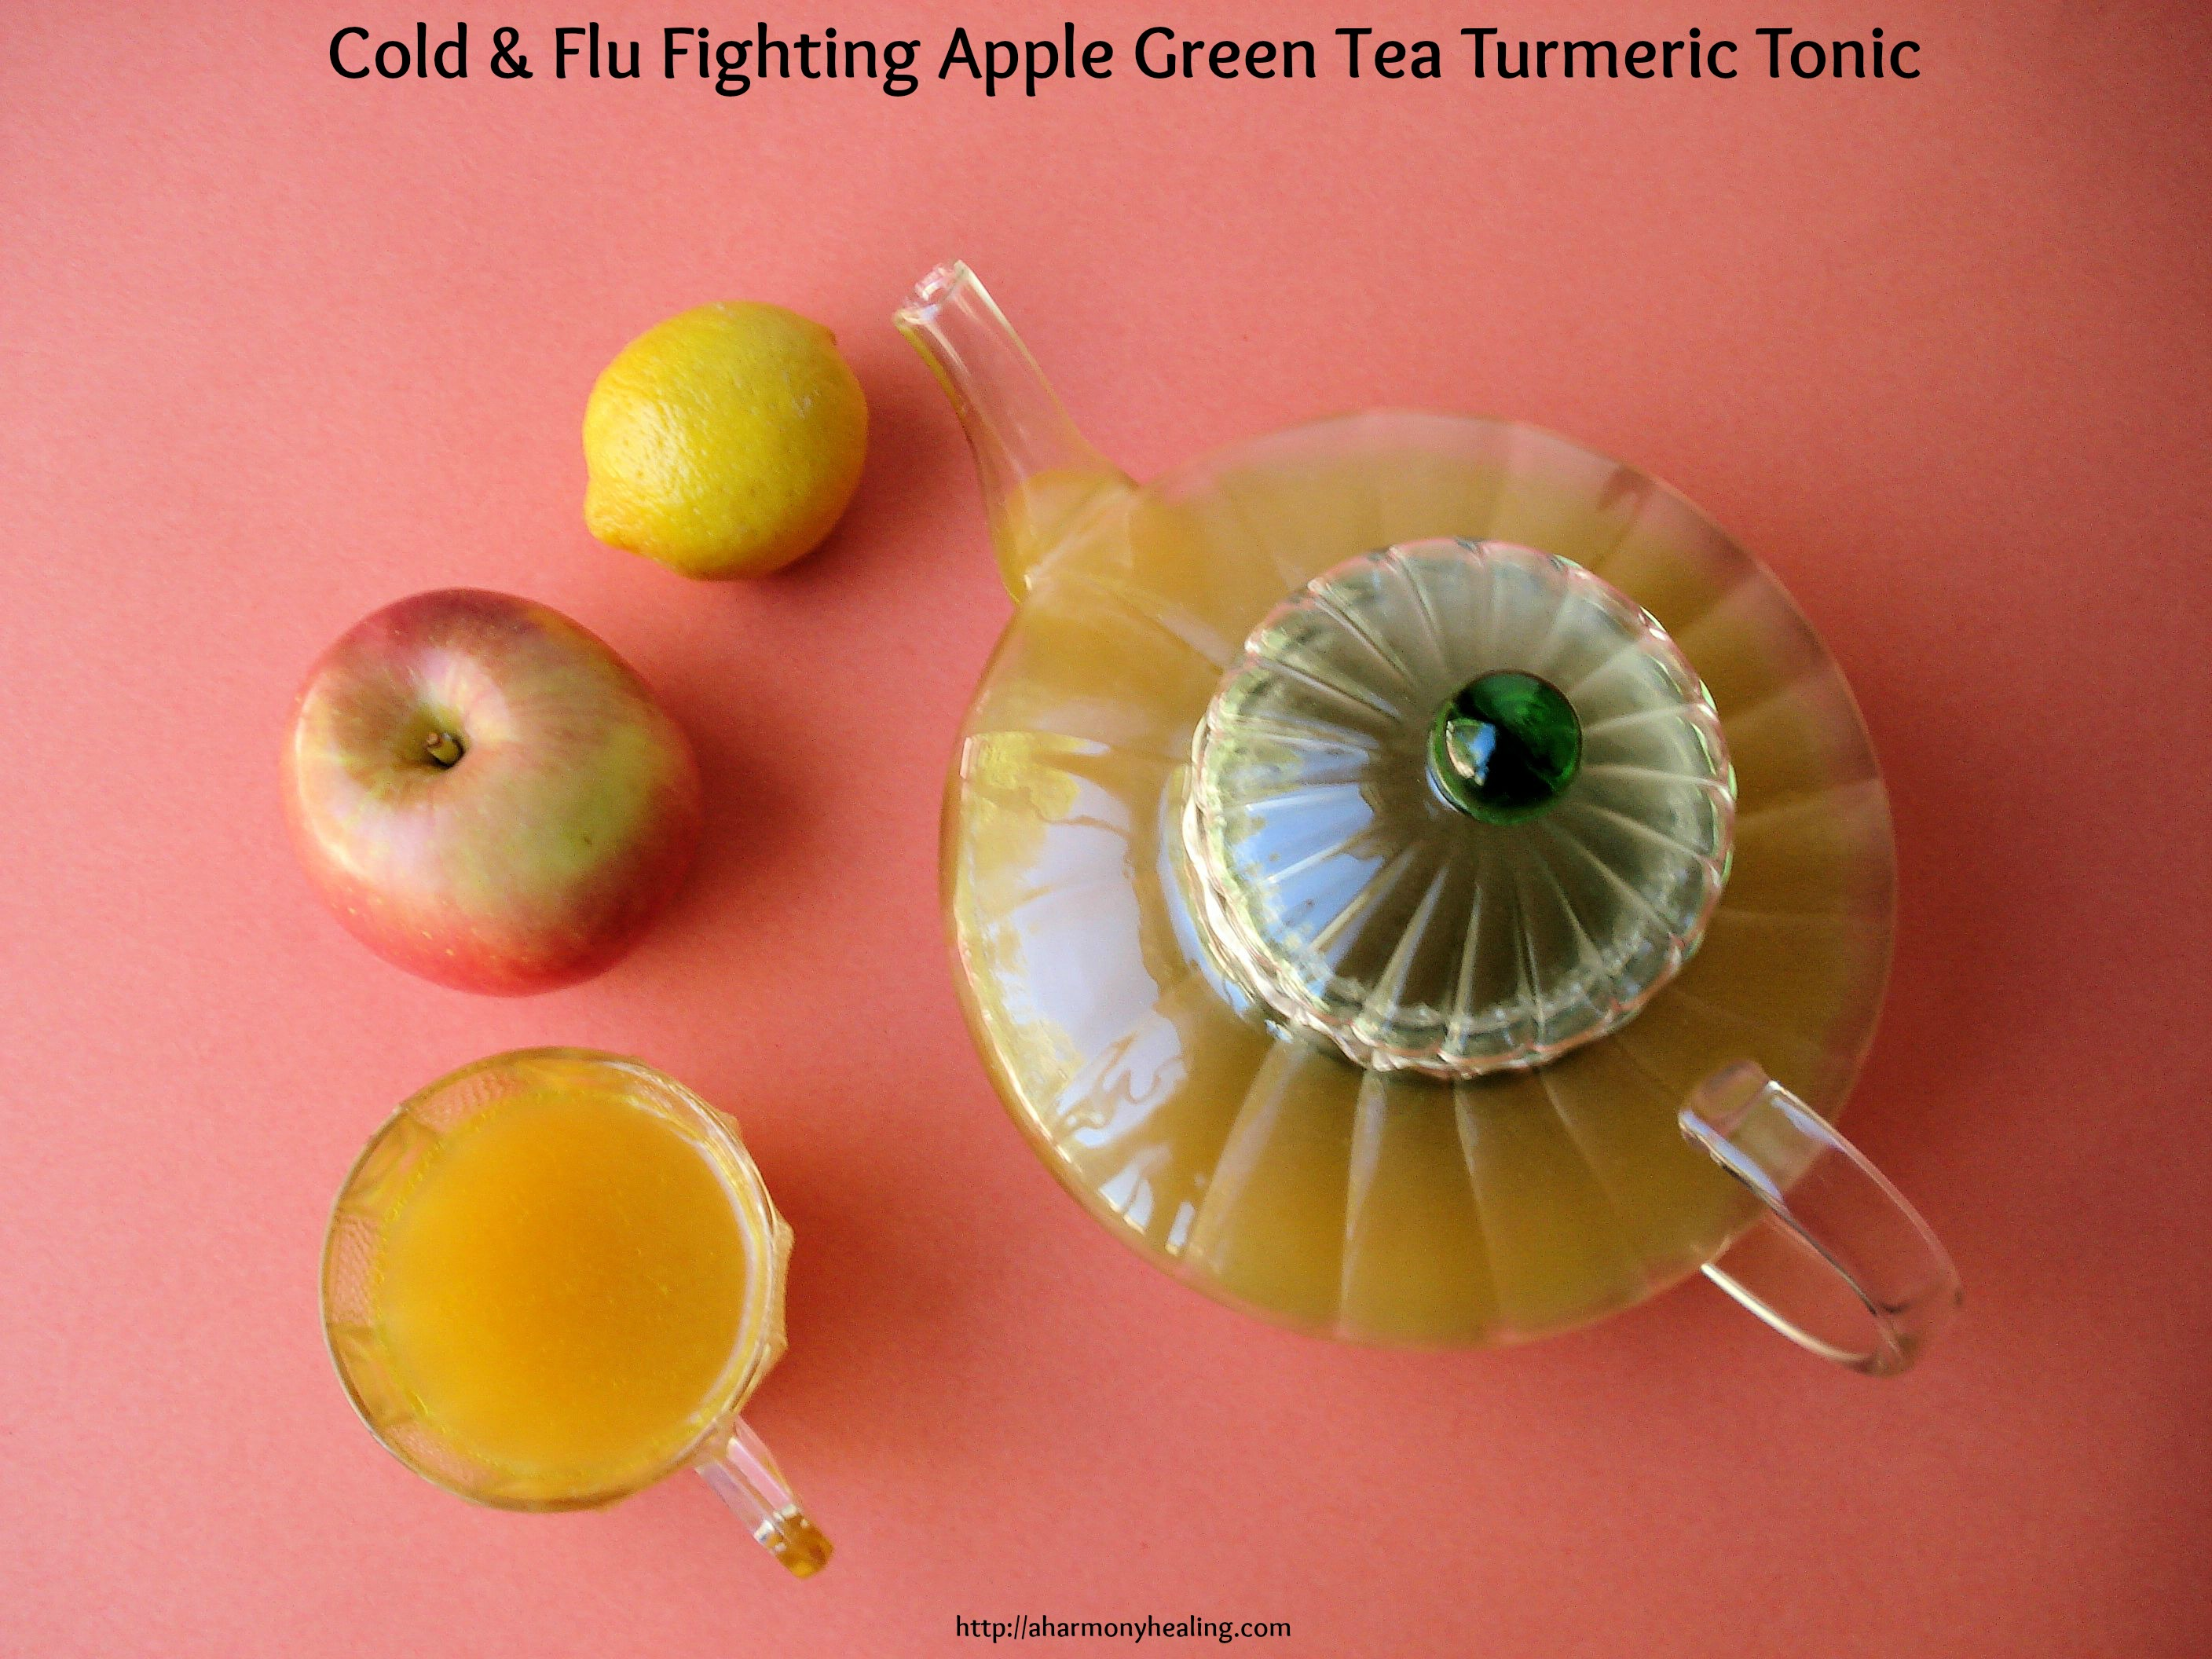 Cold-Flu-Fighting-Apple-Green-Tea-Turmeric-Tonic